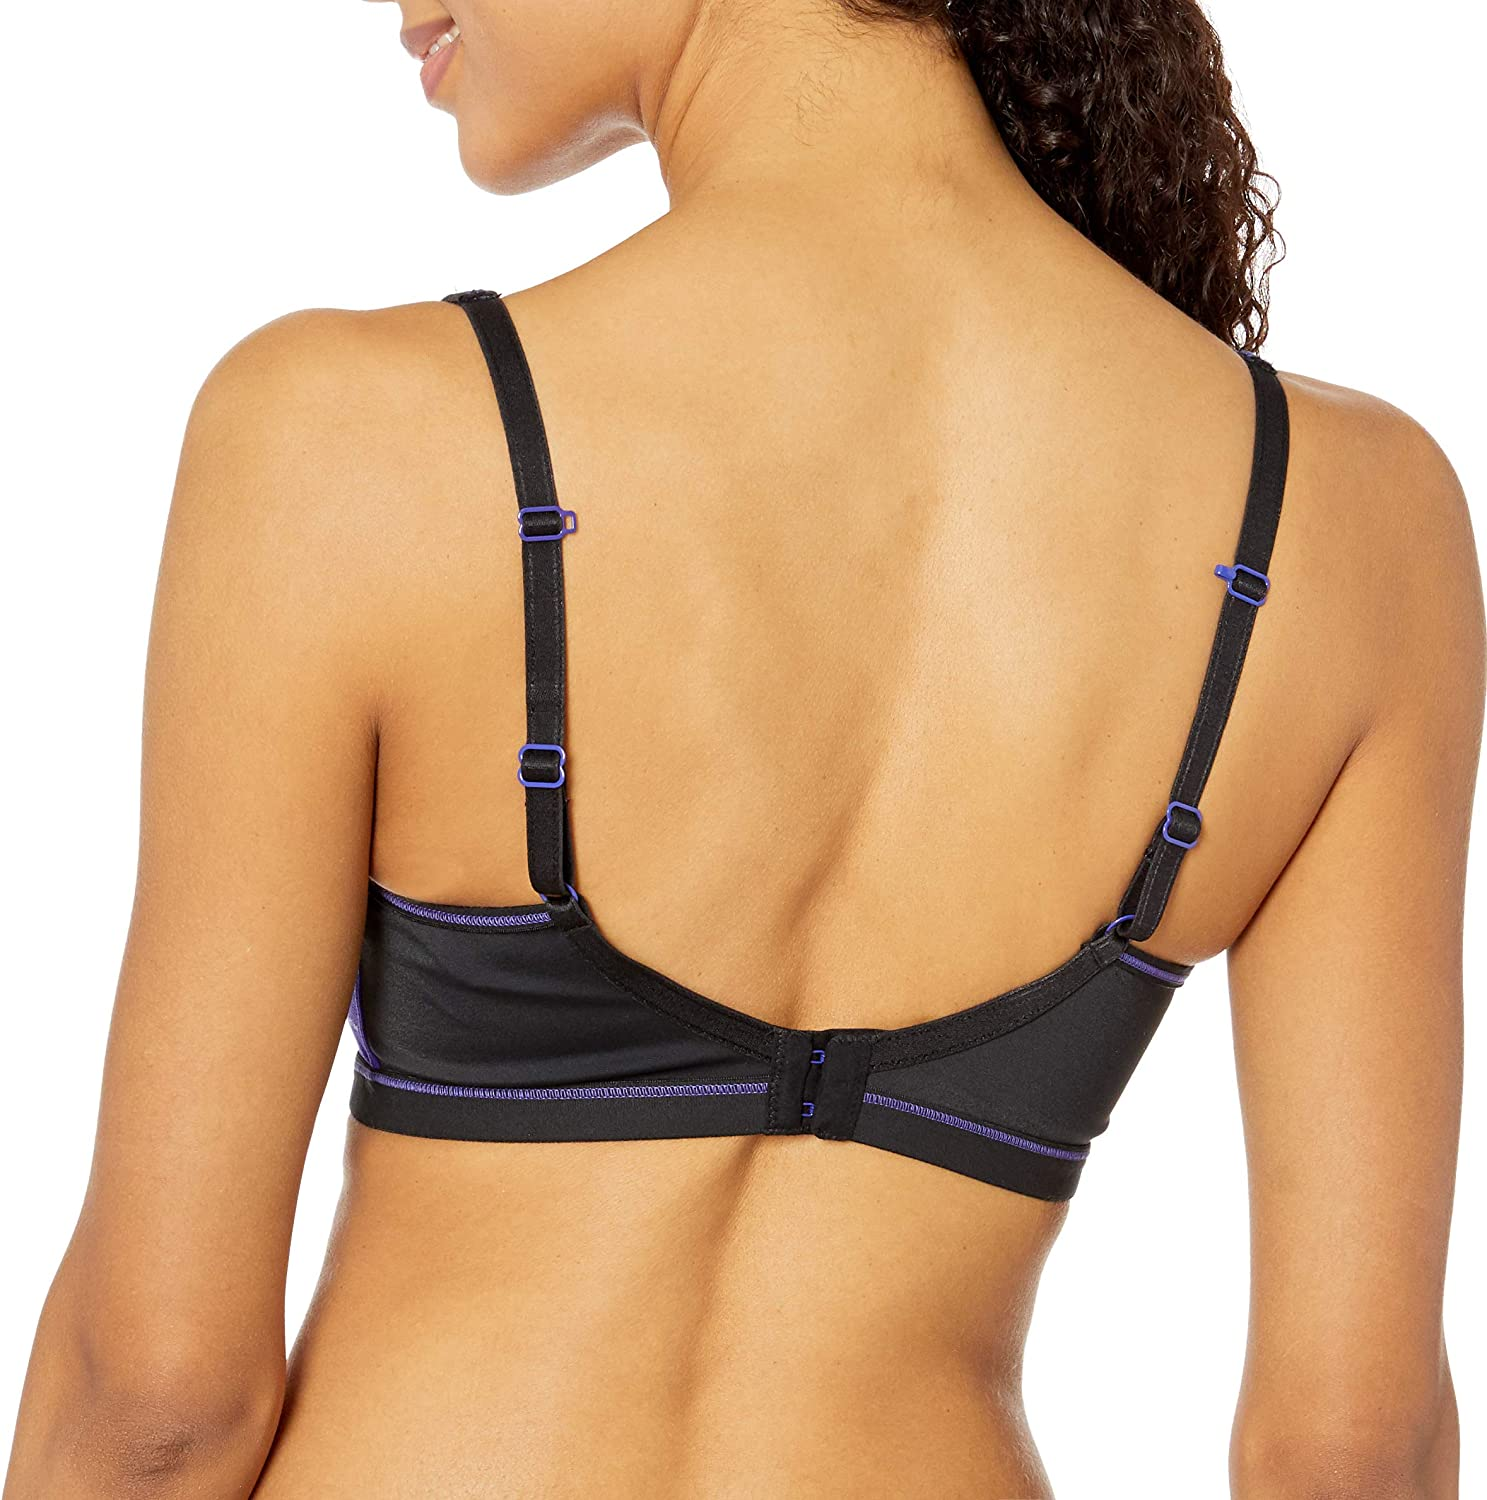 Freya Womens Epic Underwire Crop Top Sports Bra with Molded Inner